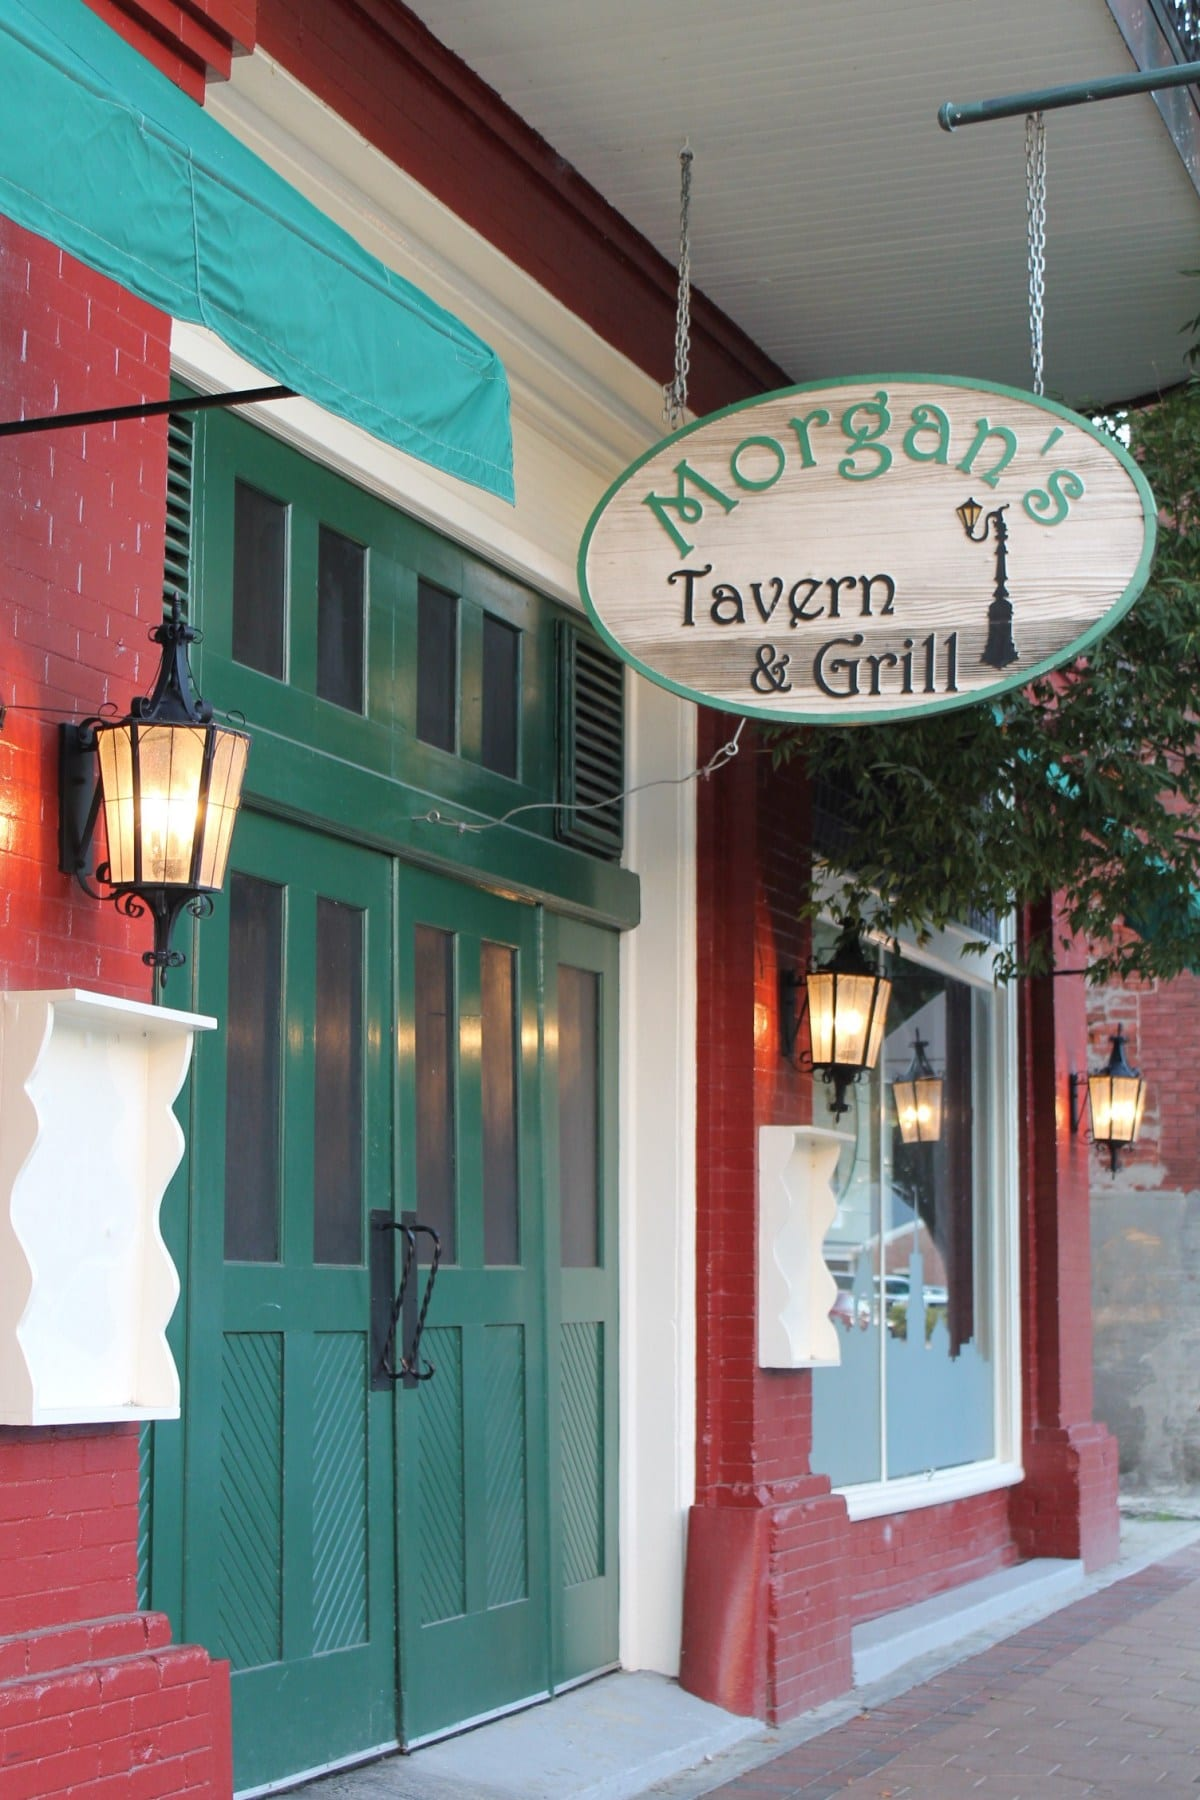 New Bern restaurant, Morgan's Tavern, Morga's Tavern and Grill in New Bern